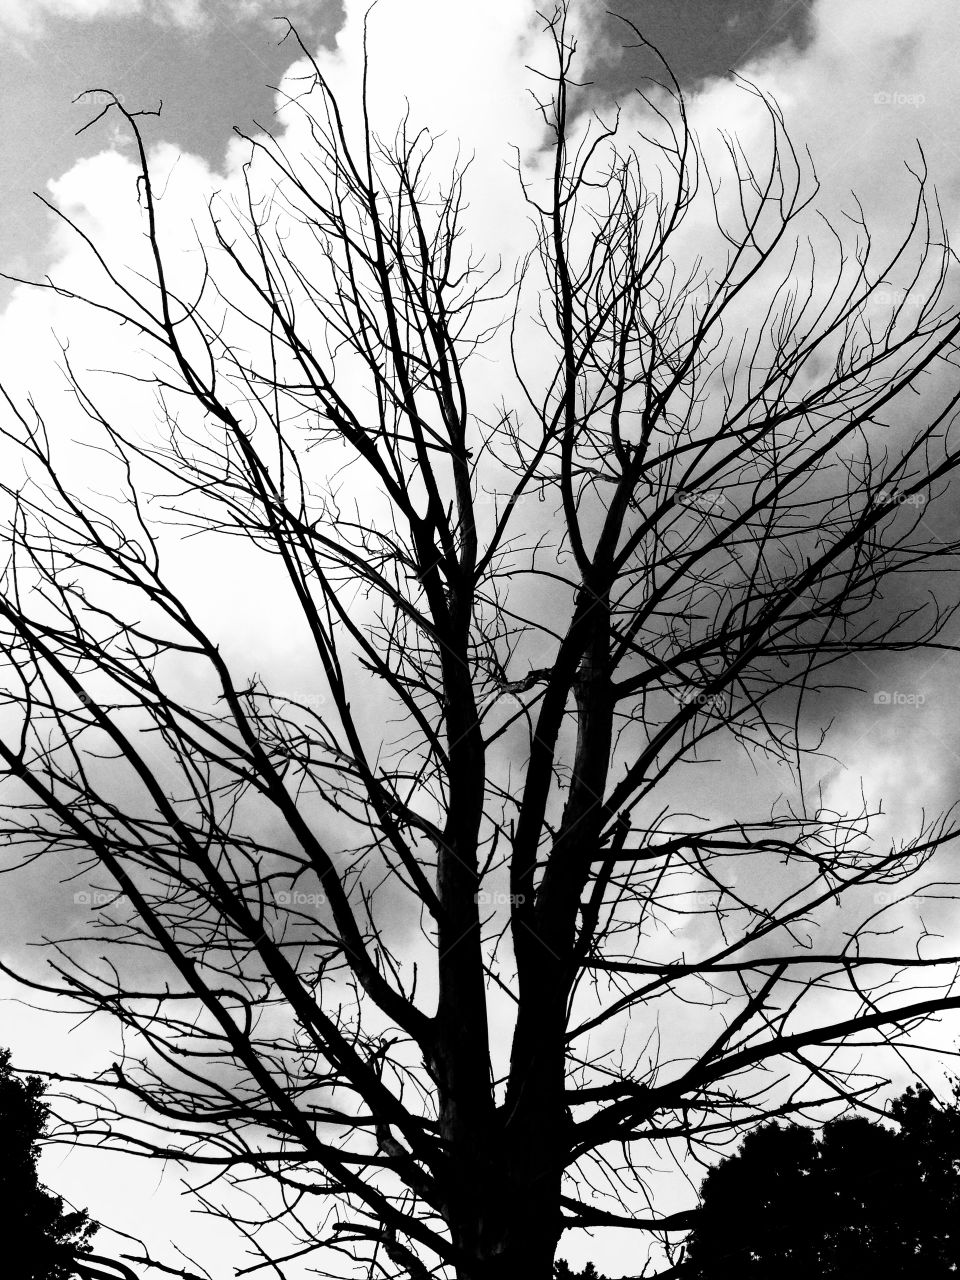 Artistic Tree. A dead tree is silhouetted against puffy clouds.